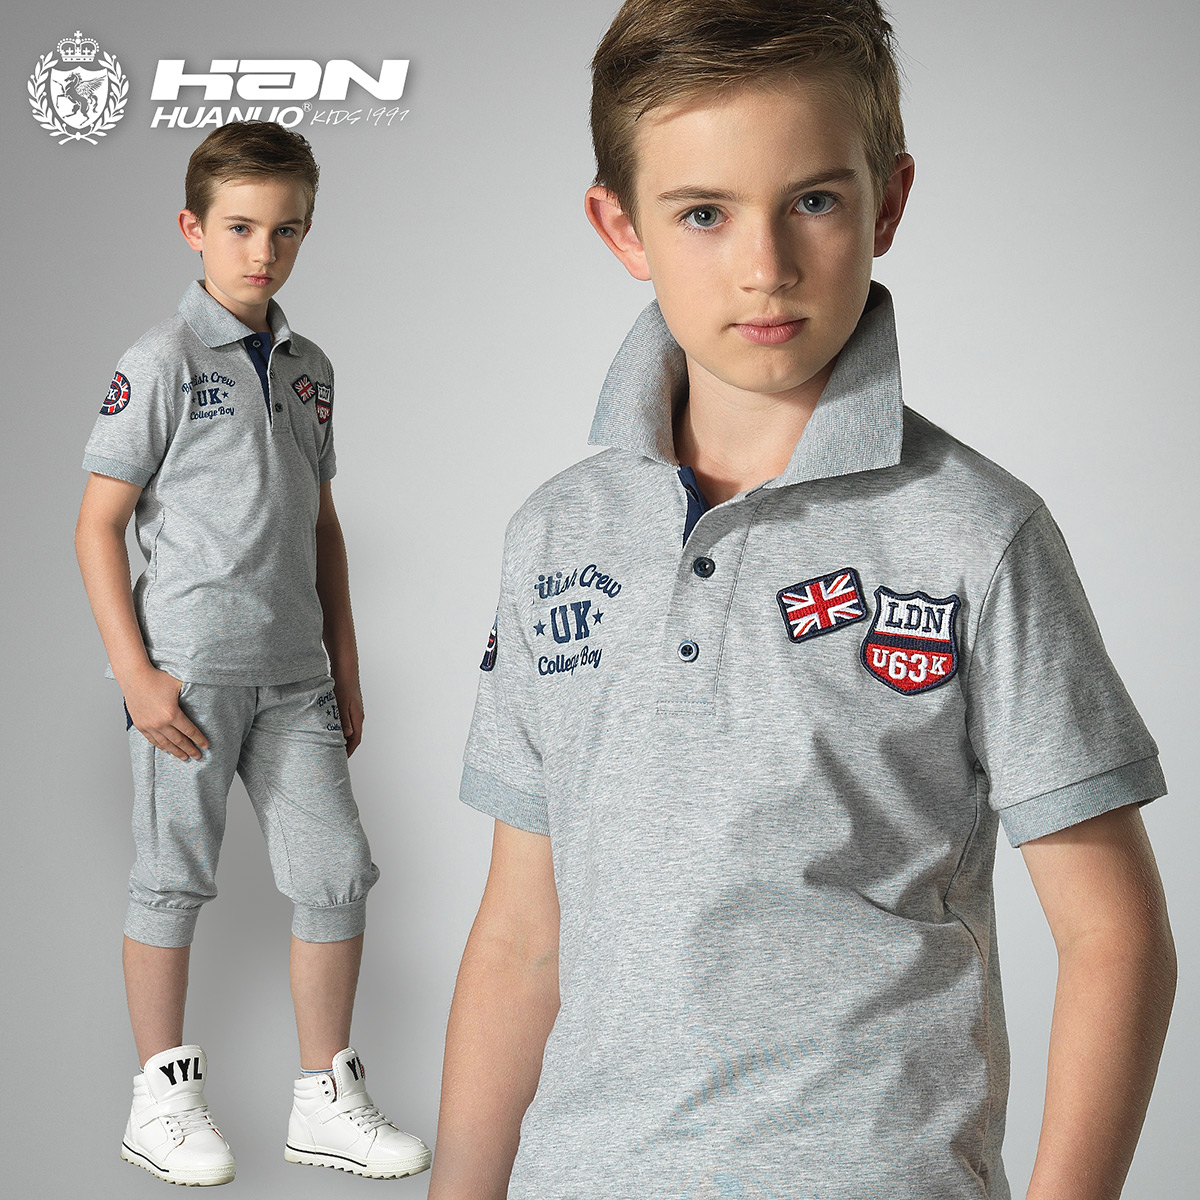 Boys summer suit 2016 new children's clothing brand fashion short-sleeved t-shirt + shorts two-piece kids sports clothing trend(China (Mainland))